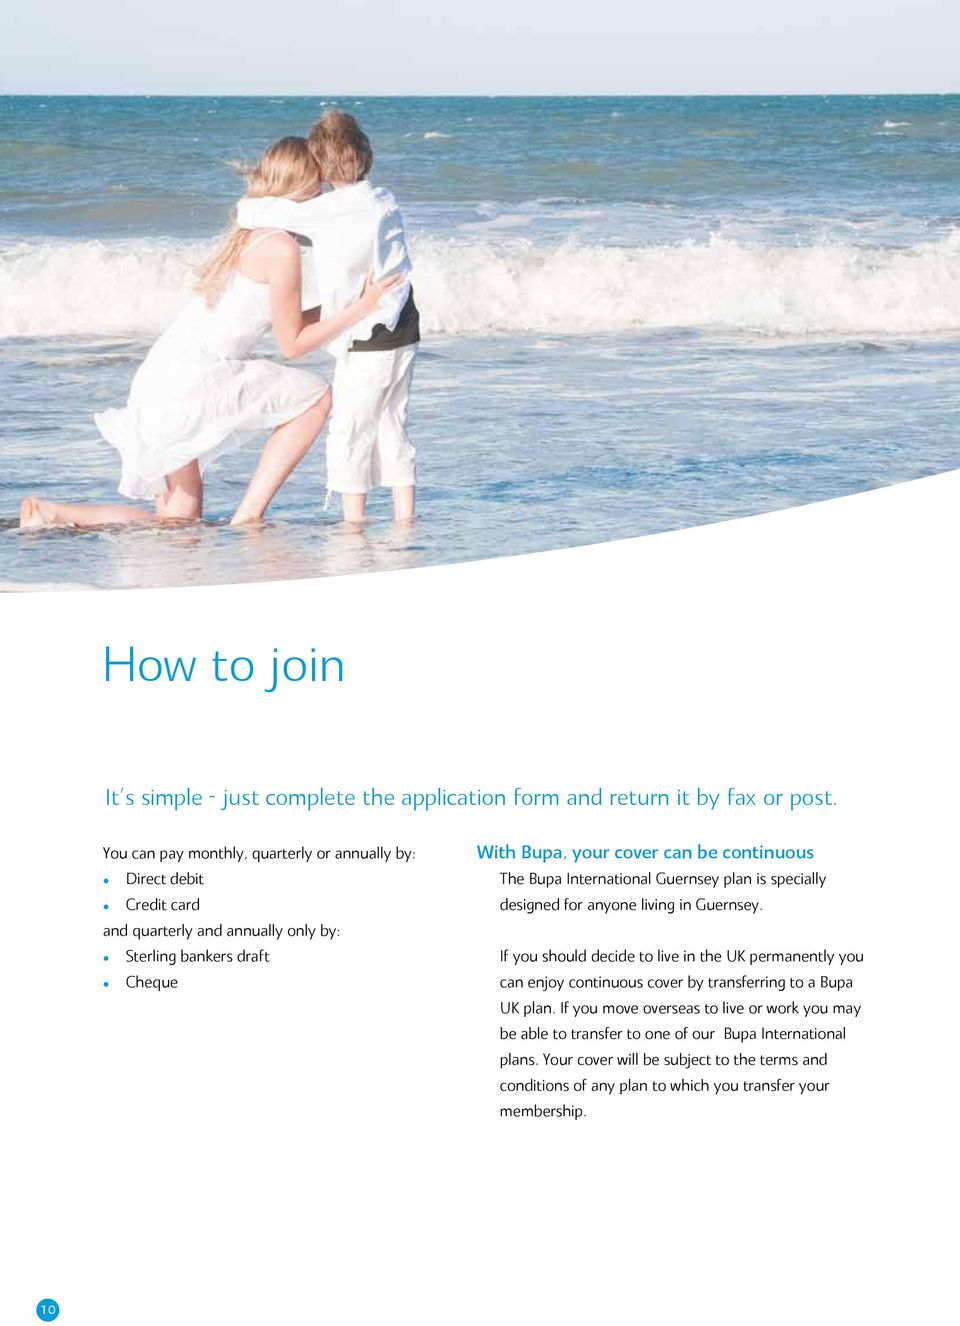 continuous The Bupa International Guernsey plan is specially designed for anyone living in Guernsey.